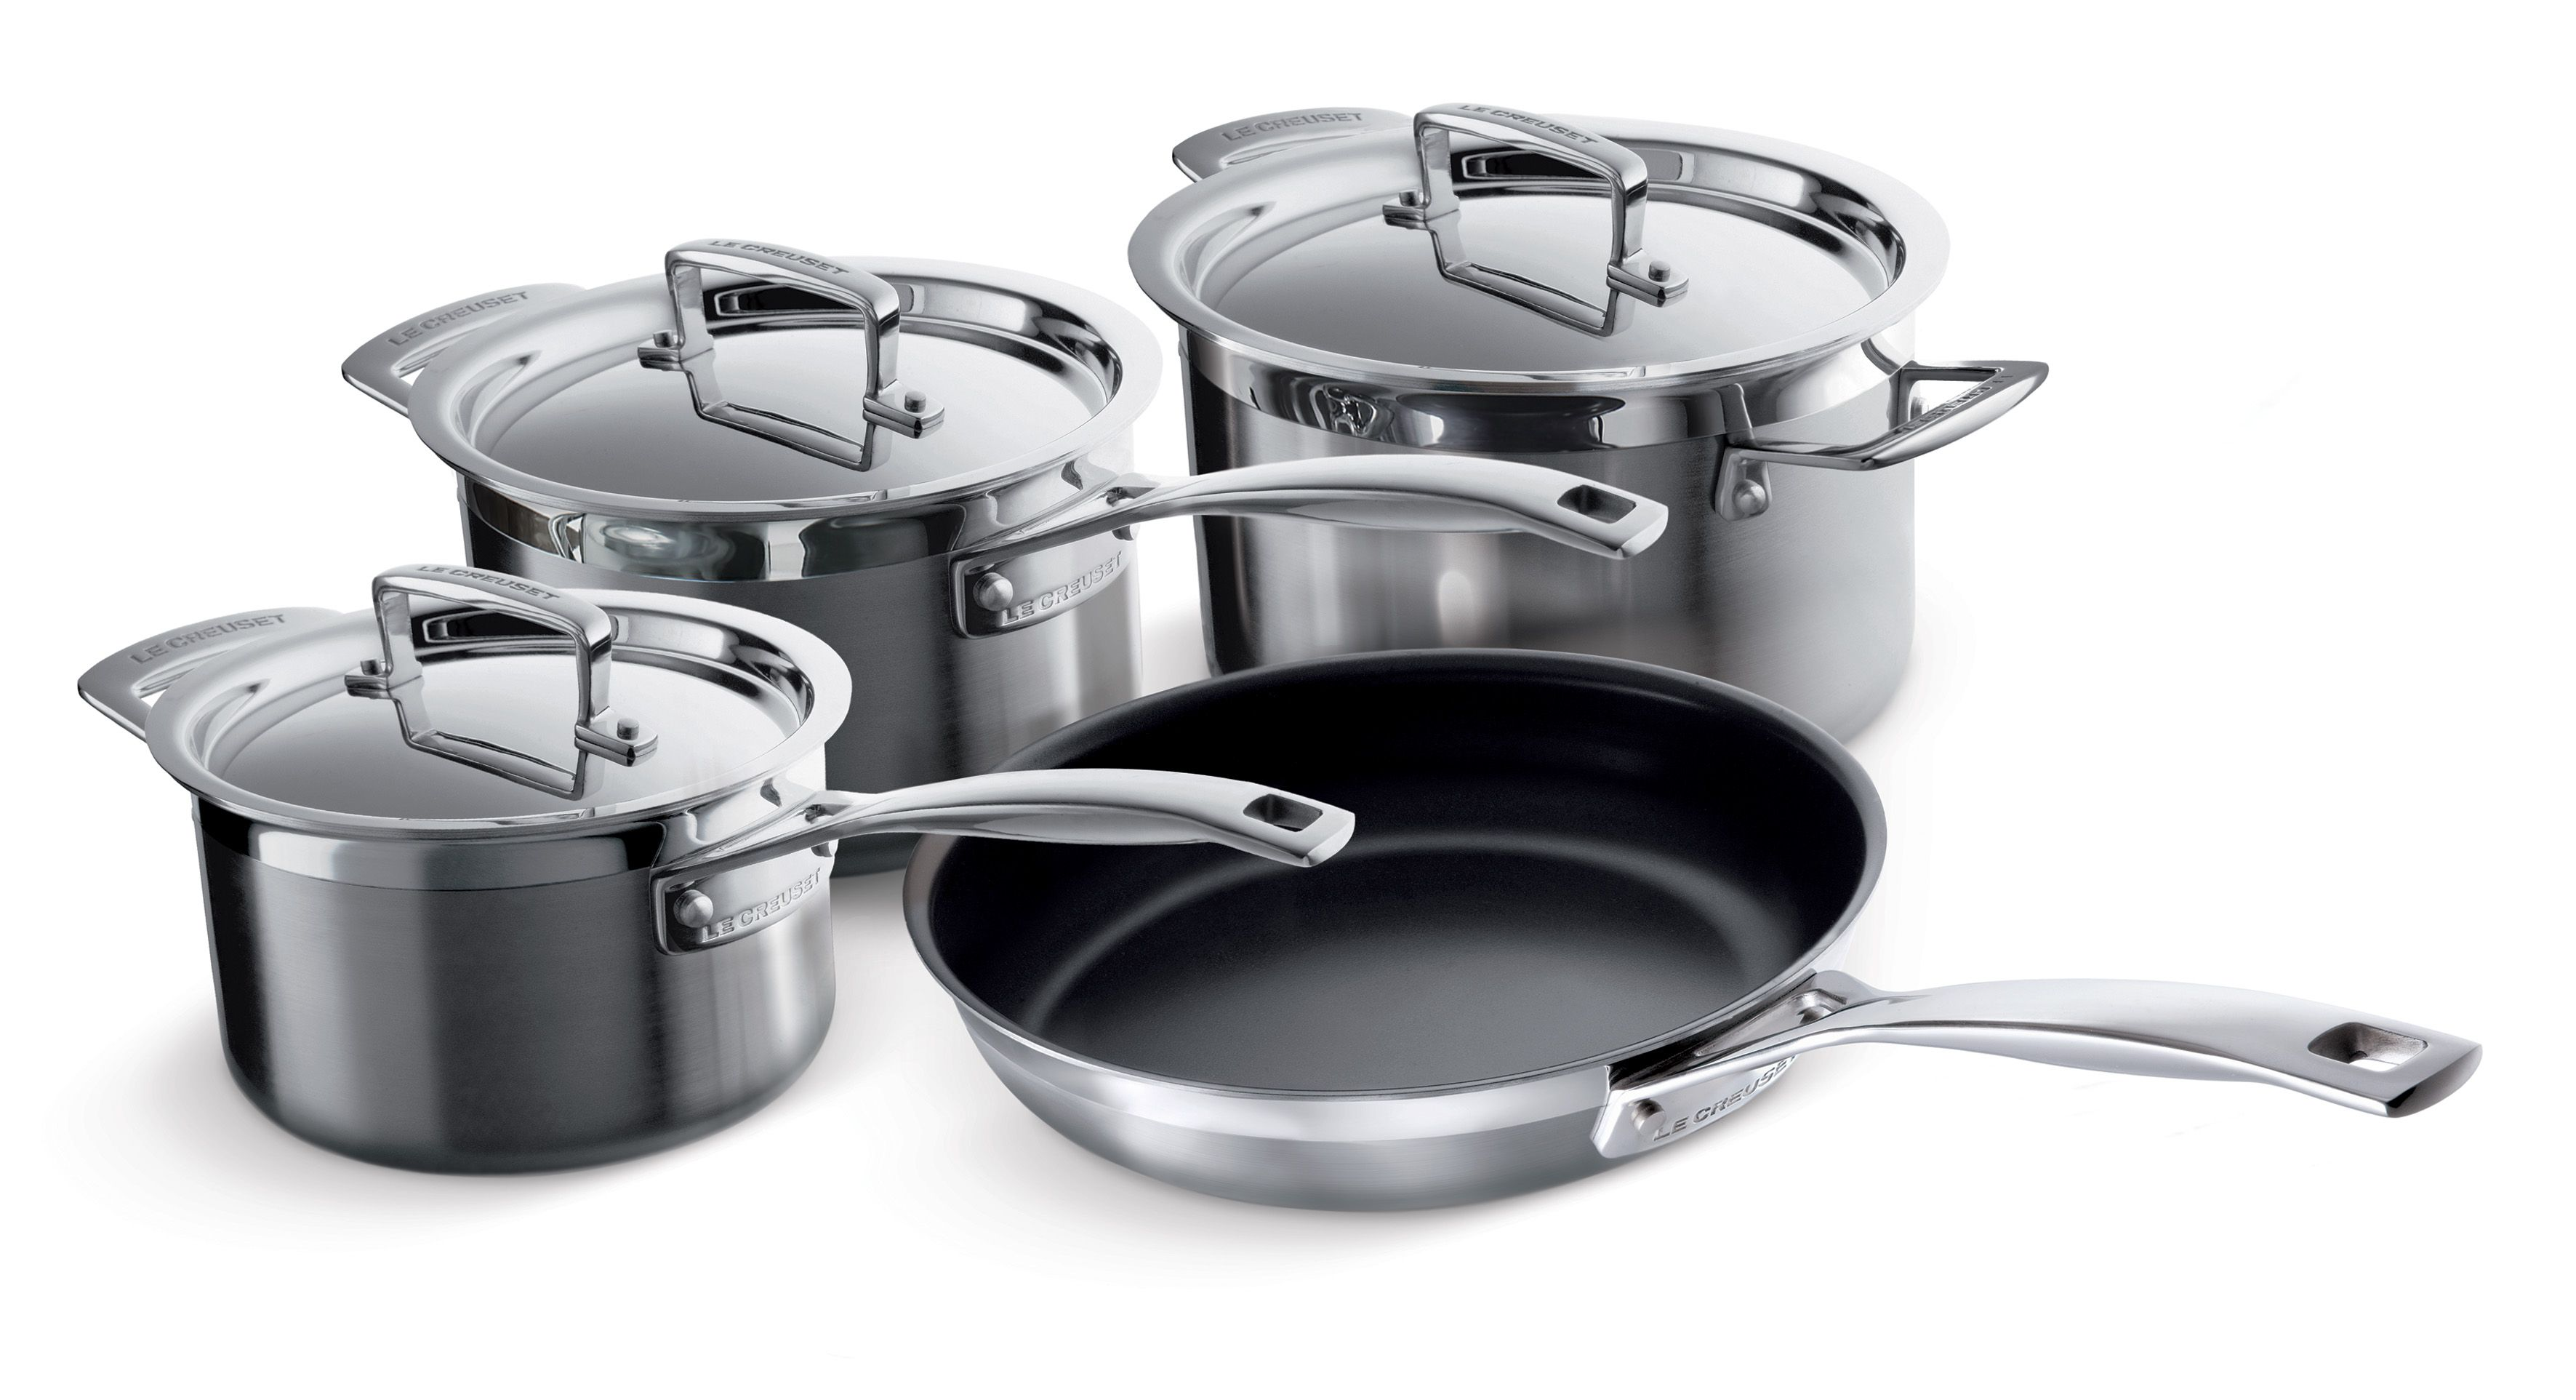 Tri ply tainless steel 4 piece pan set